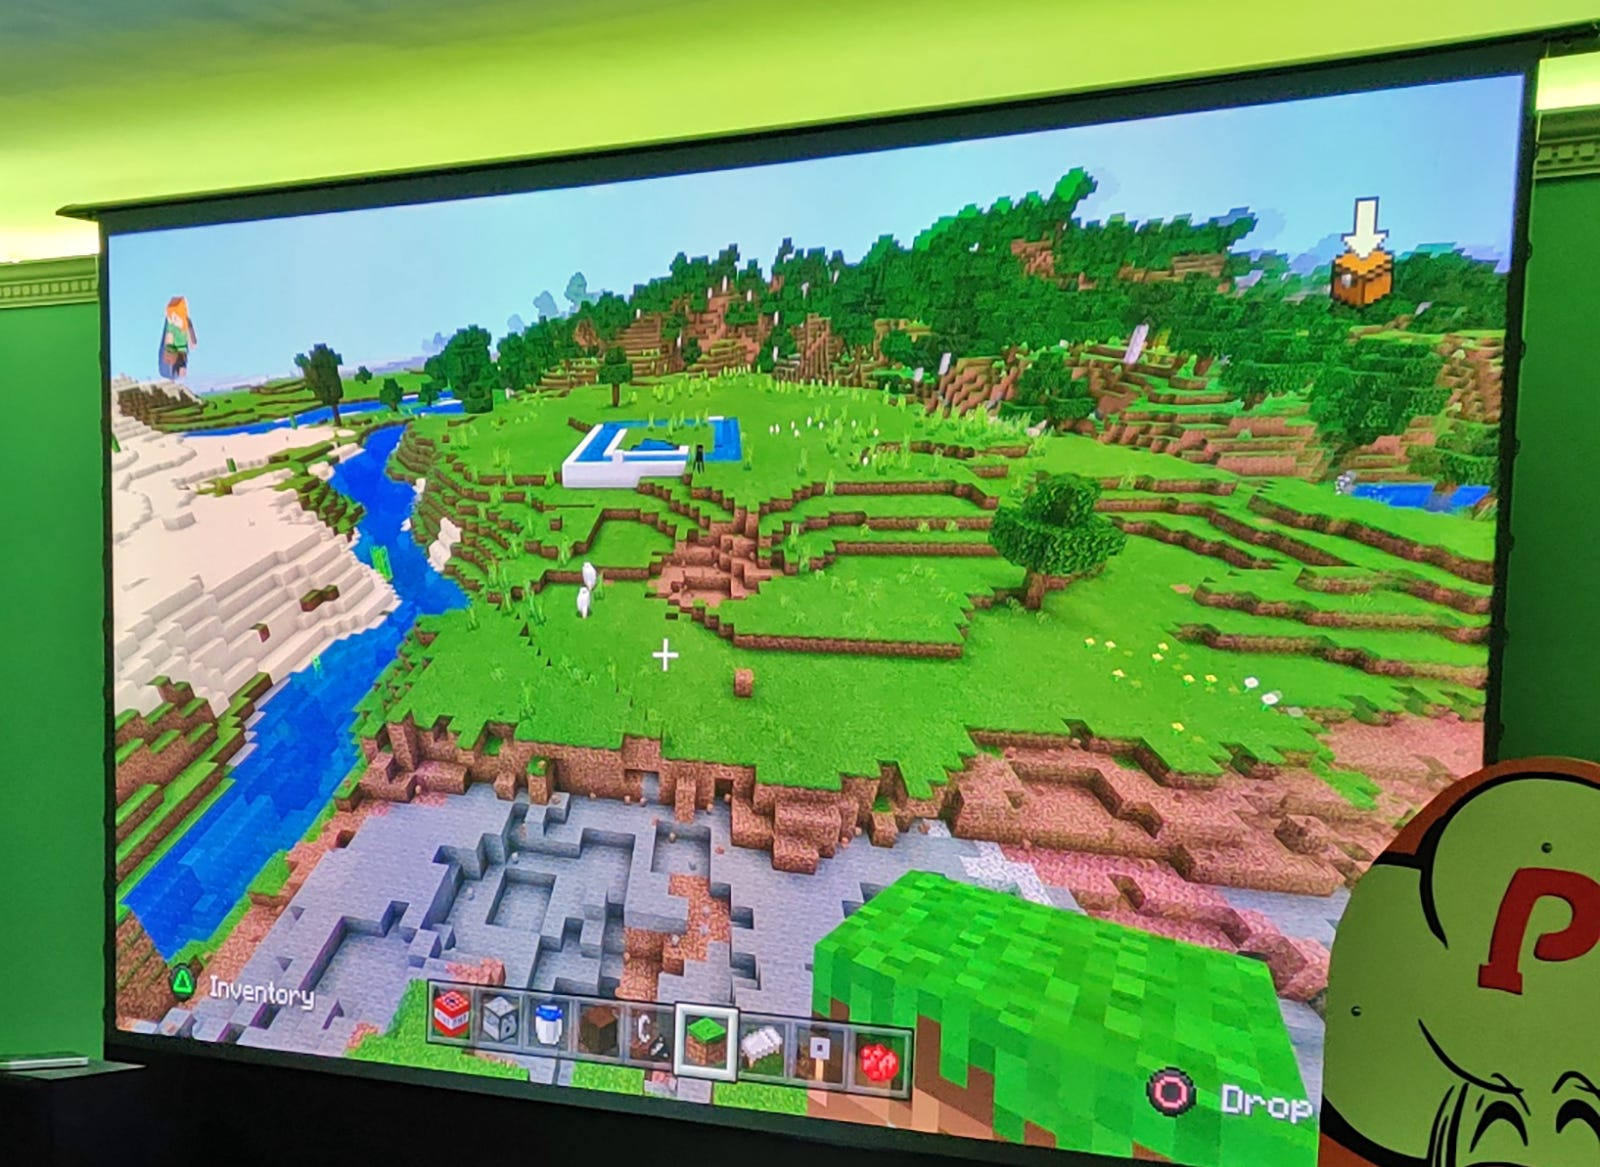 Minecraft on a giant 100 inch screen.